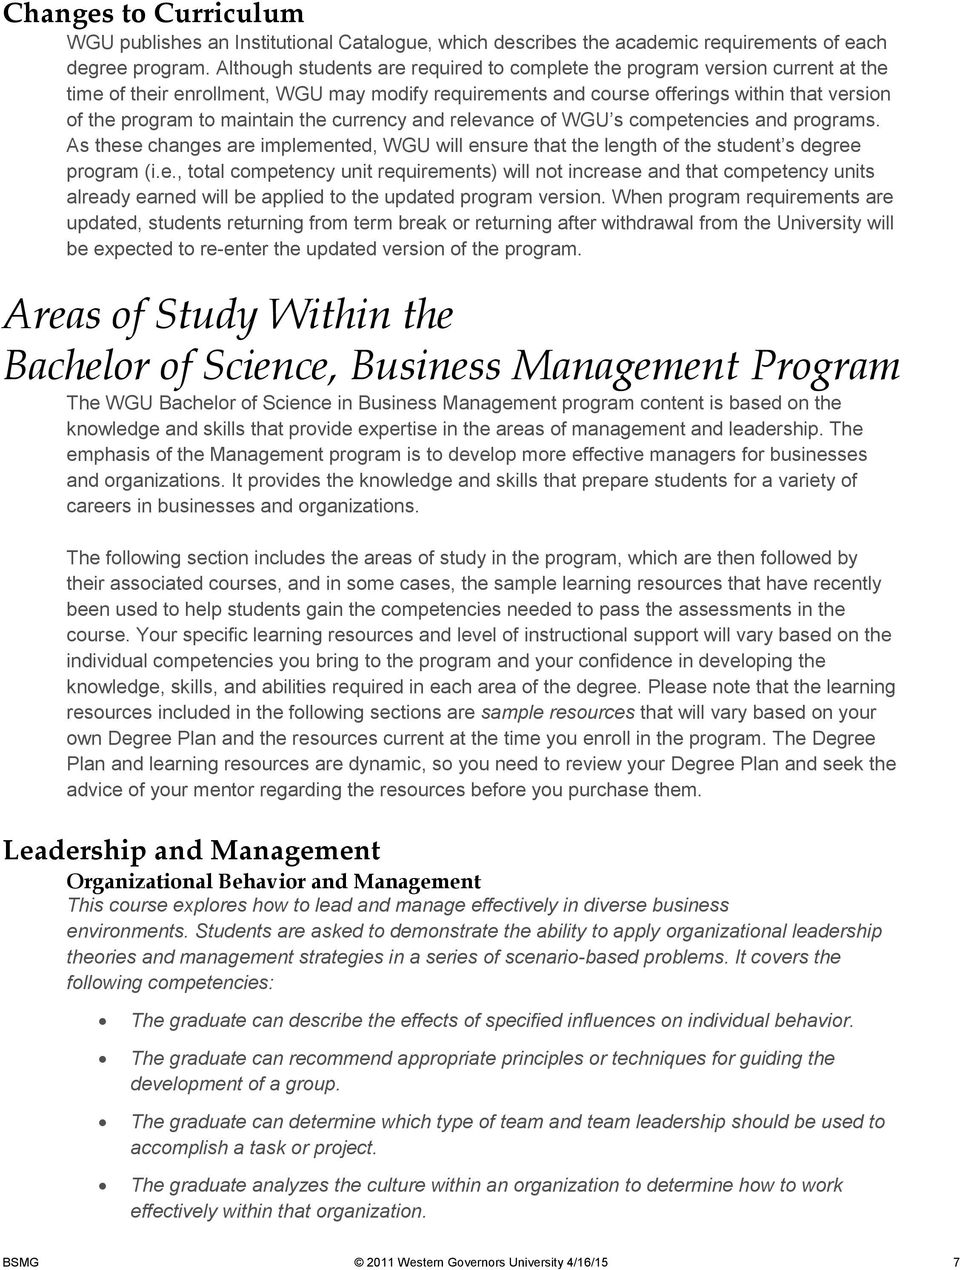 the currency and relevance of WGU s competencies and programs. As these changes are implemented, WGU will ensure that the length of the student s degree program (i.e., total competency unit requirements) will not increase and that competency units already earned will be applied to the updated program version.